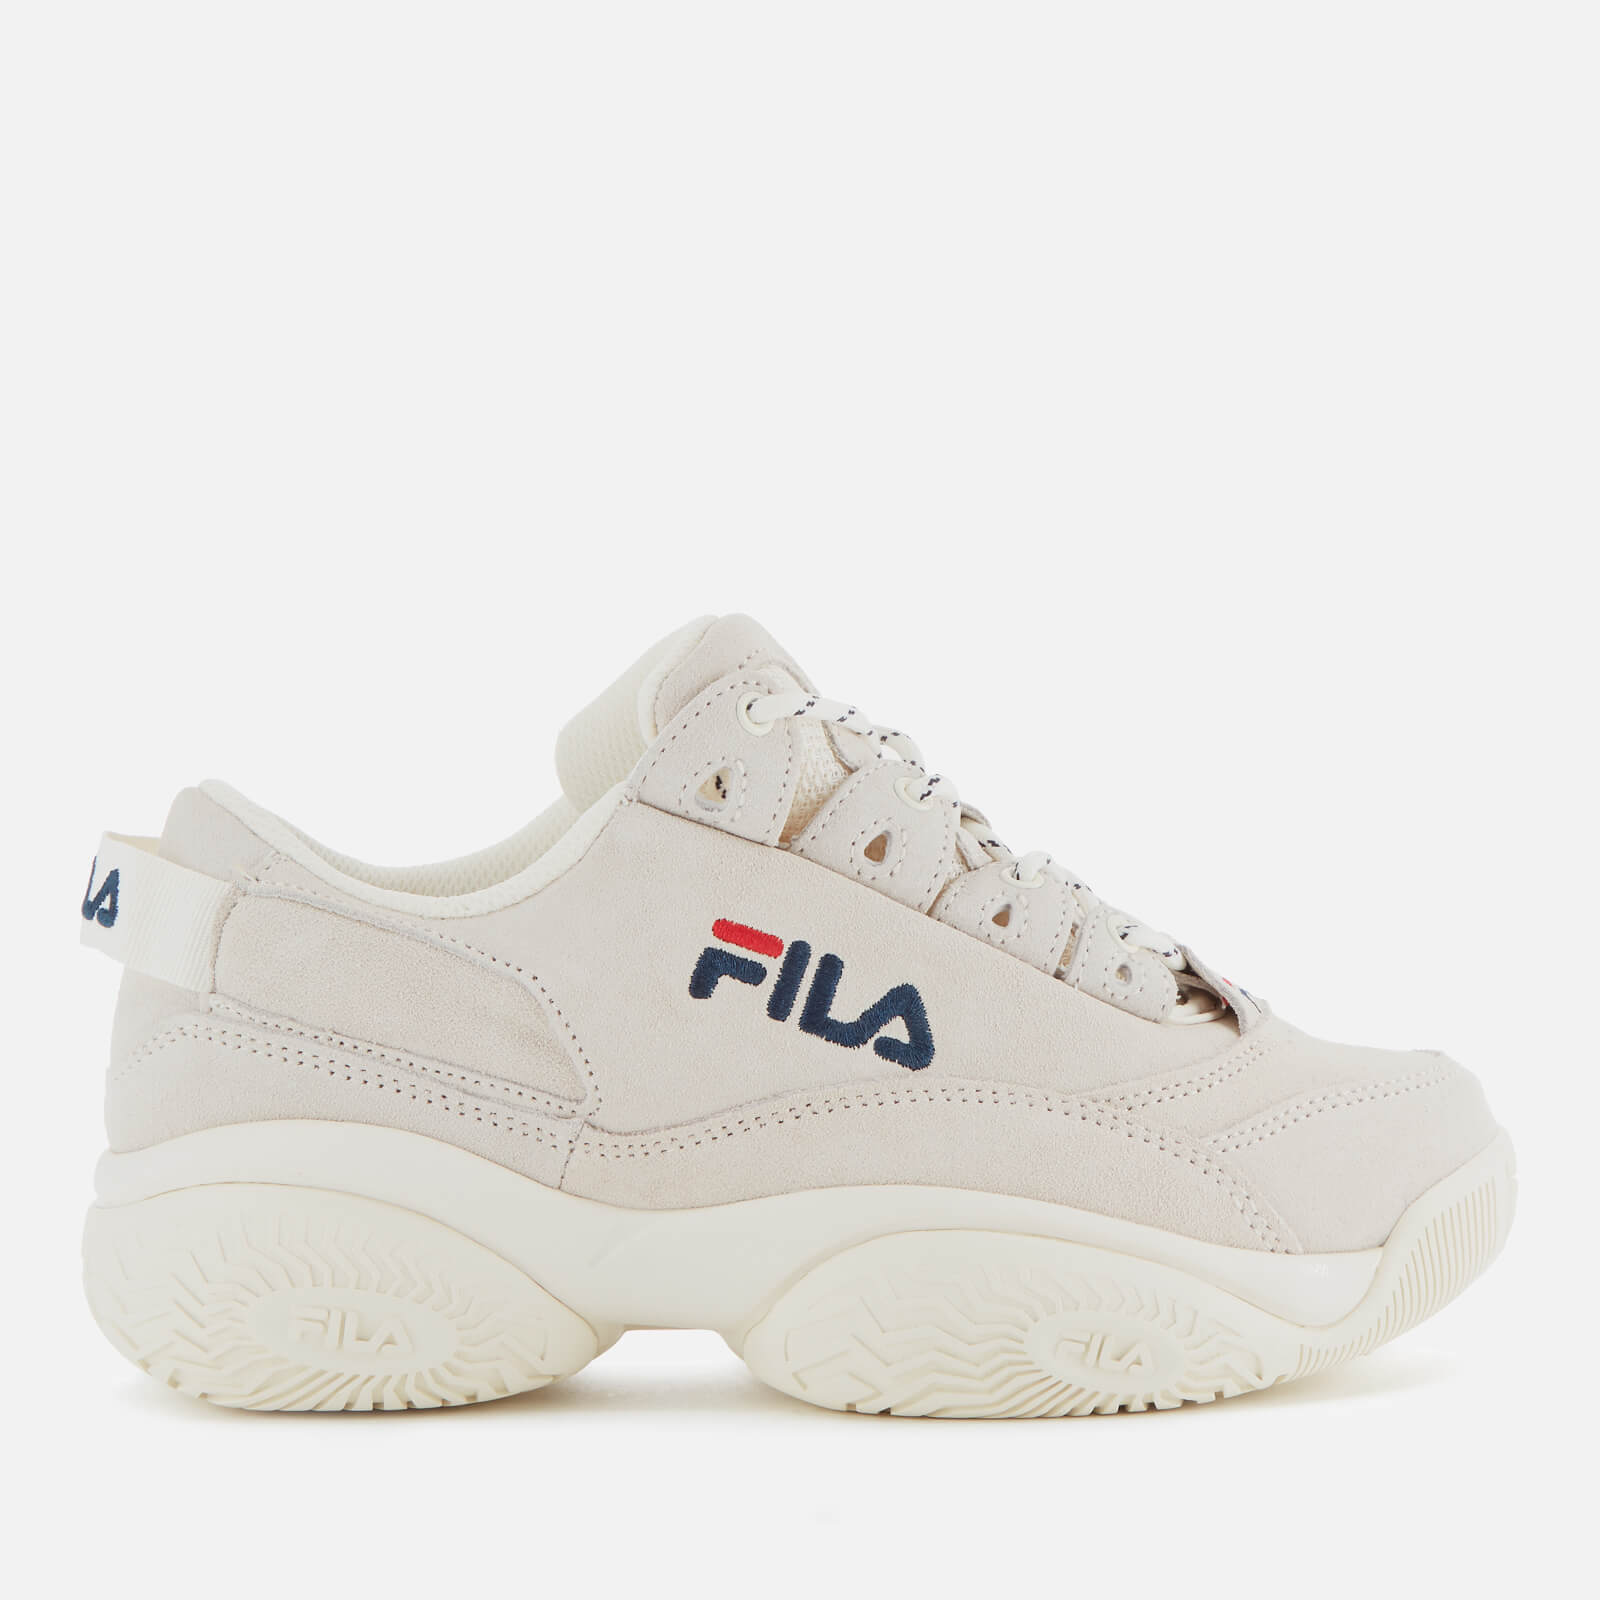 FILA Women's Provenance Trainers - Gardenia/Navy/Red